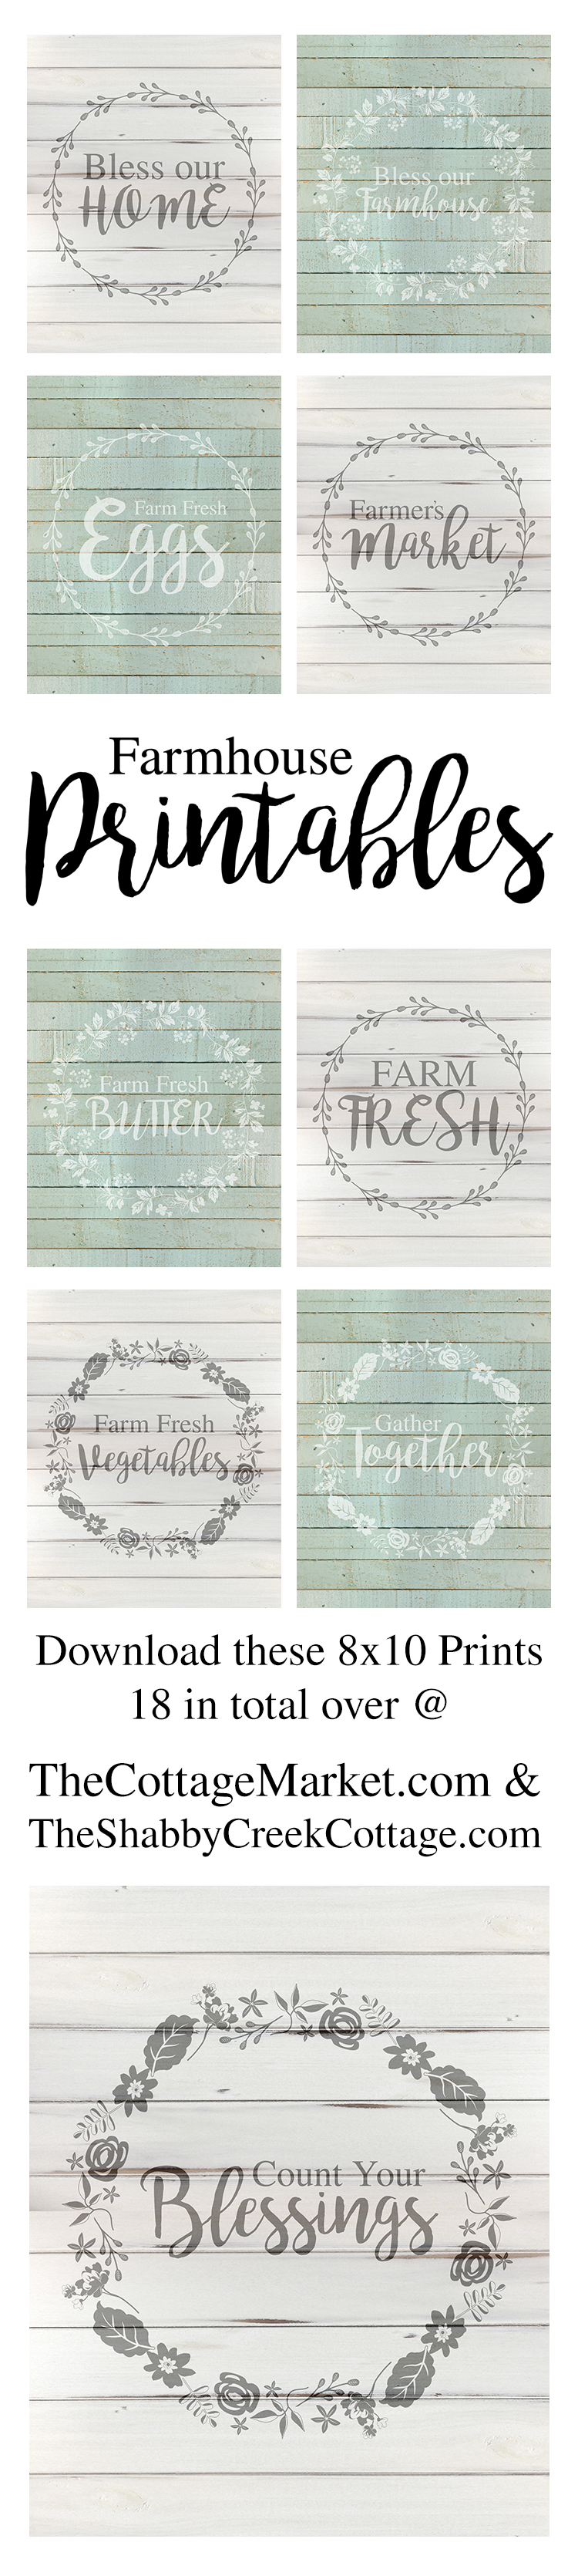 graphic regarding Free Printable Farmhouse Signs called The Perfect Free of charge Printable Farmhouse Wall Artwork Prints - The